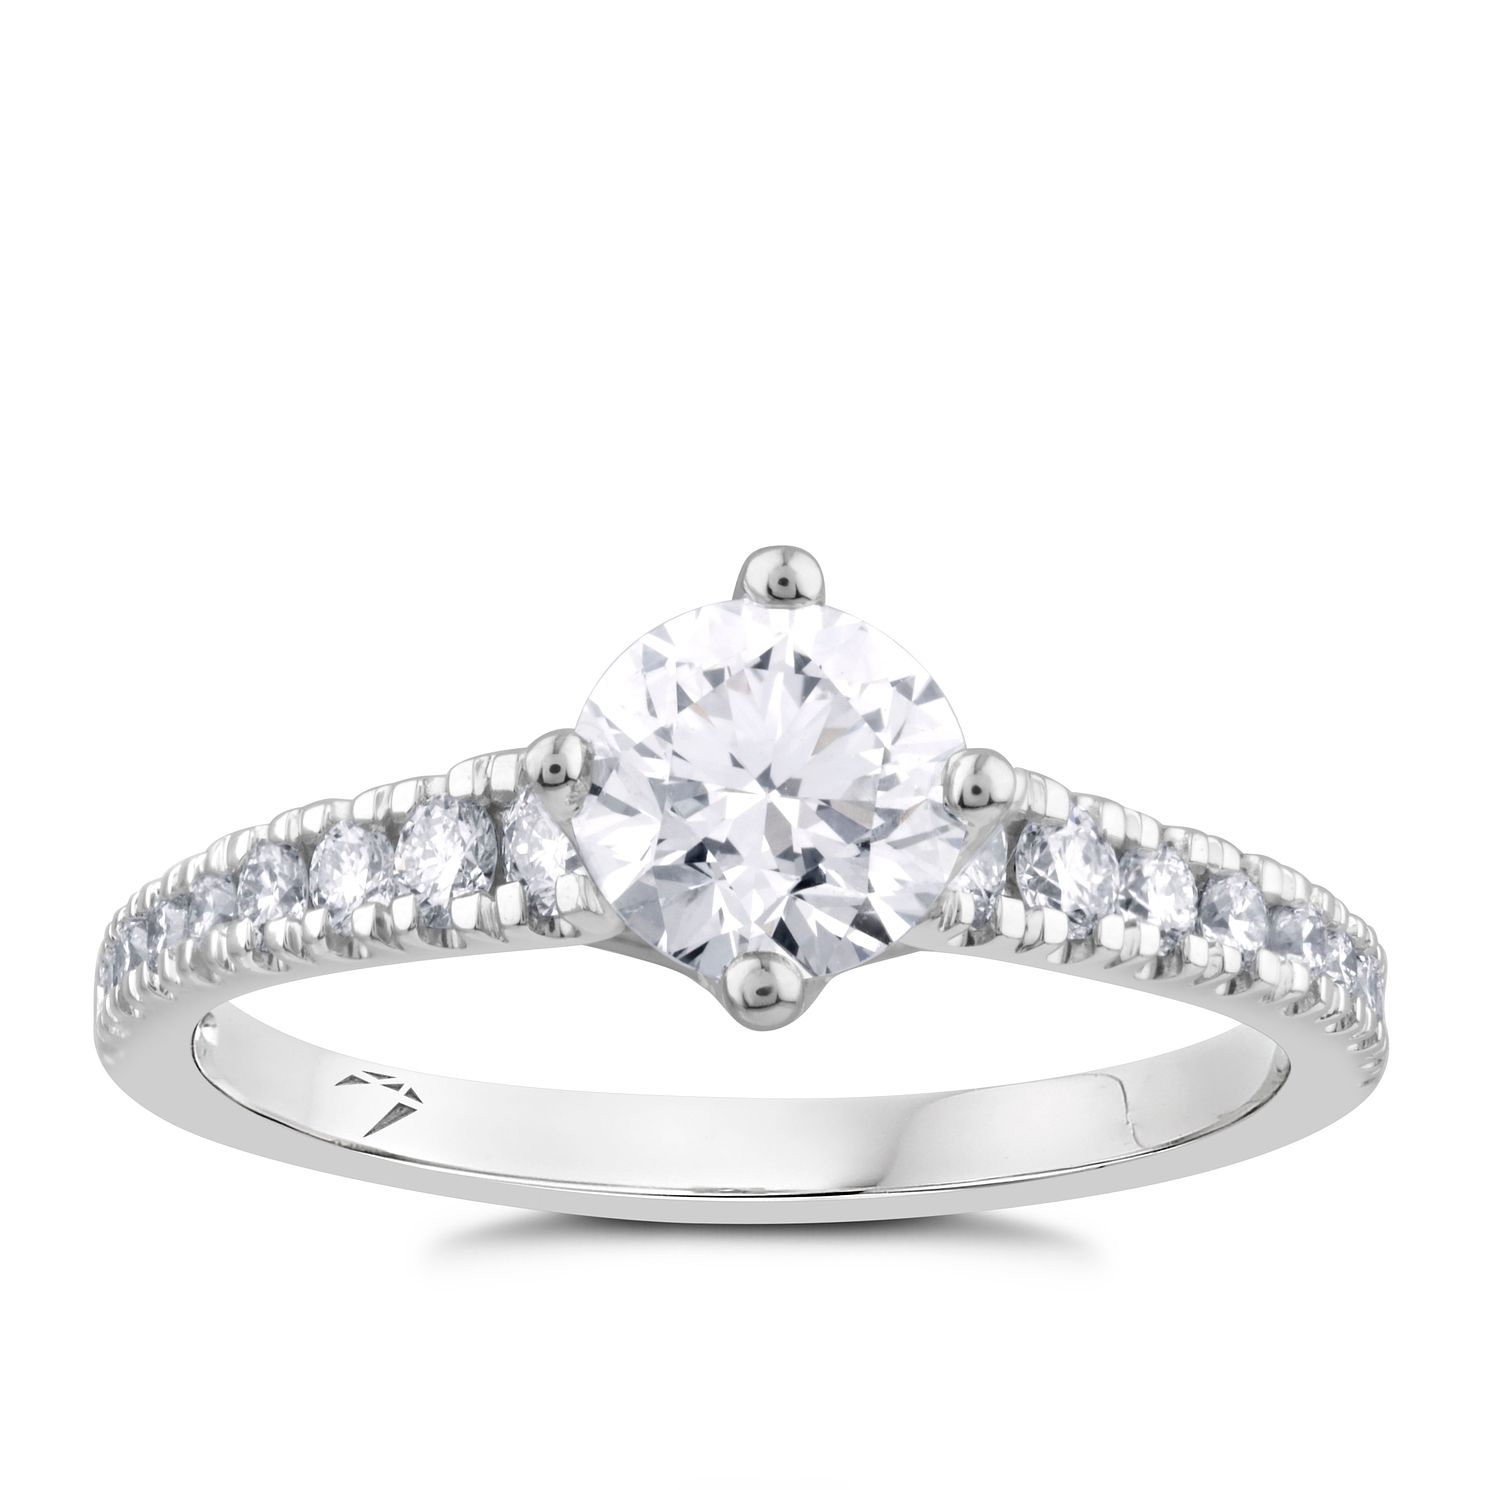 Arctic Light 18ct White Gold 1ct Diamond Ring - Product number 2304945